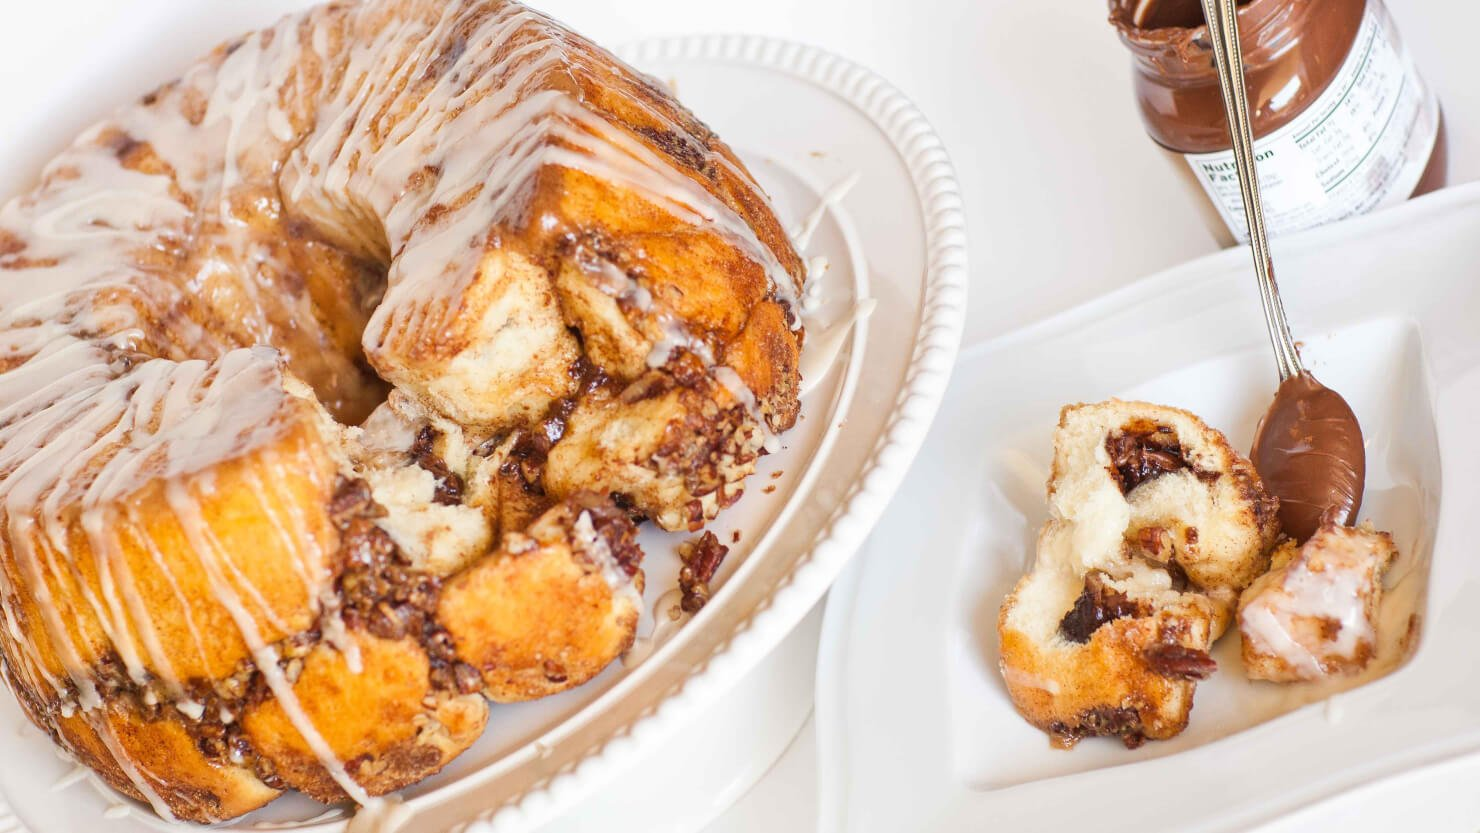 Nutella-Stuffed Pull-Apart Bread with video recipe